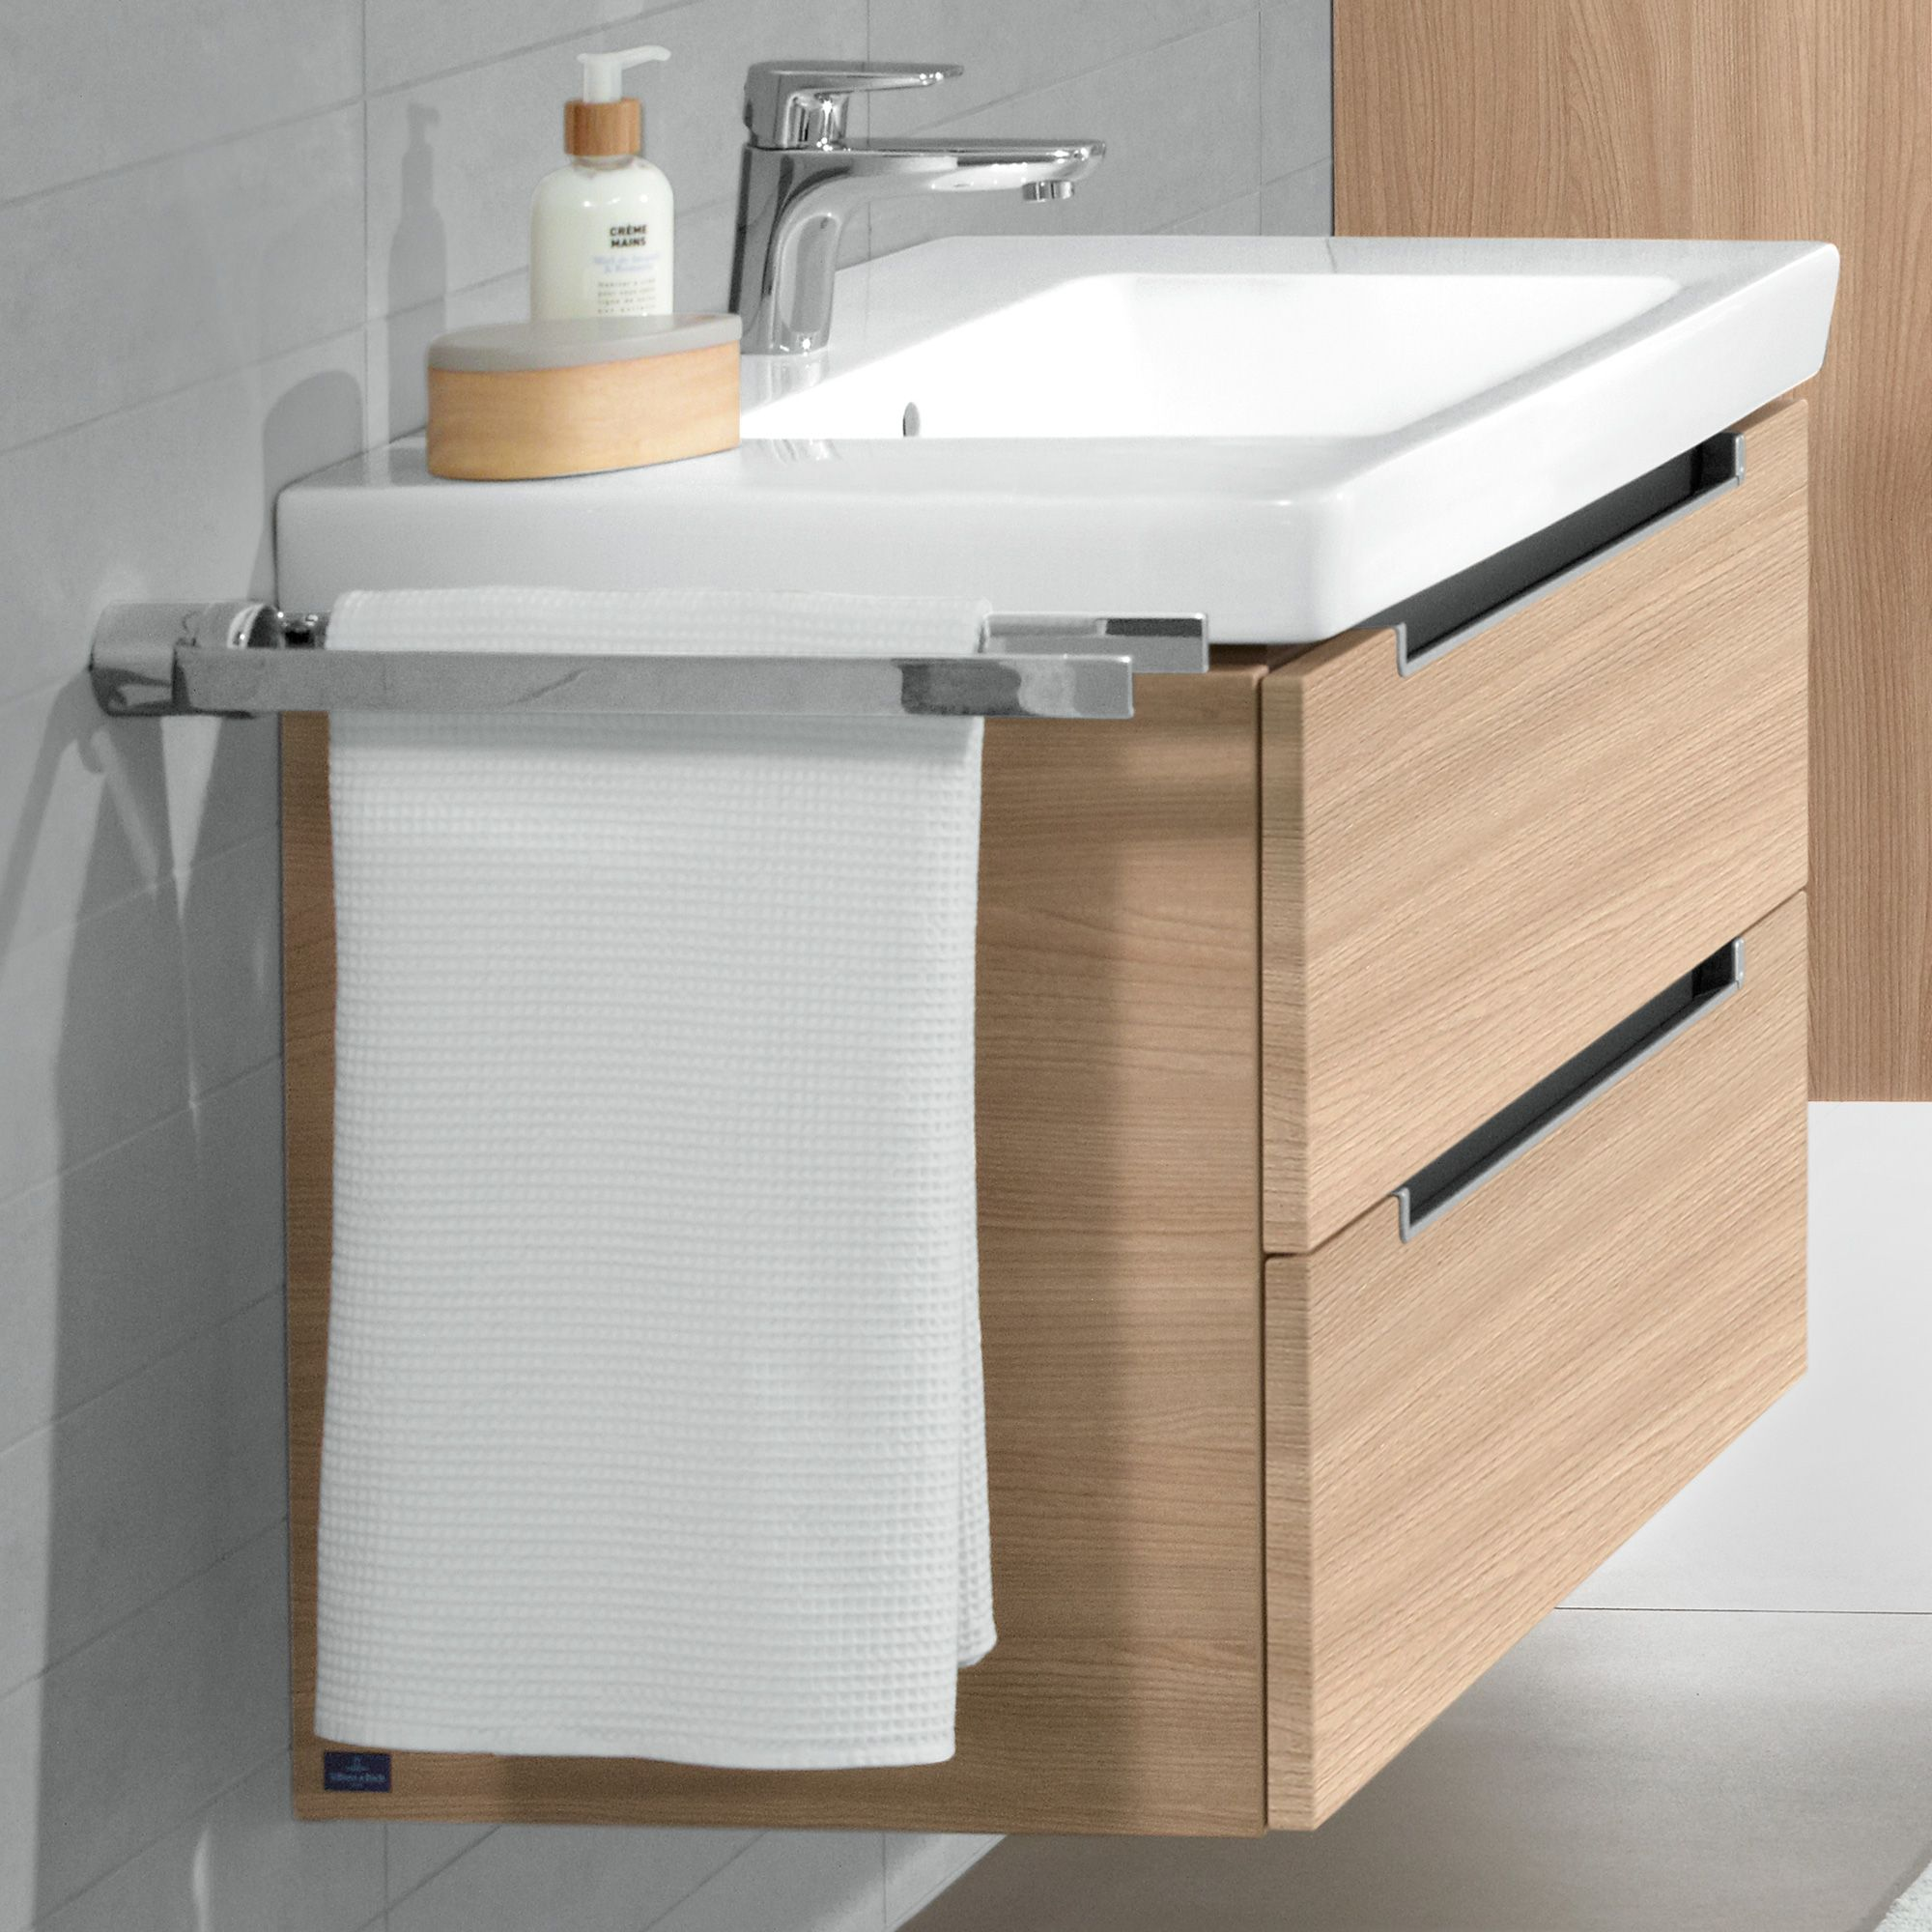 Villeroy Boch Subway 2 Vanity Unit With 2 Drawers Elm Impresso A69600pn Vanity Units Villeroy Boch Colorful Furniture